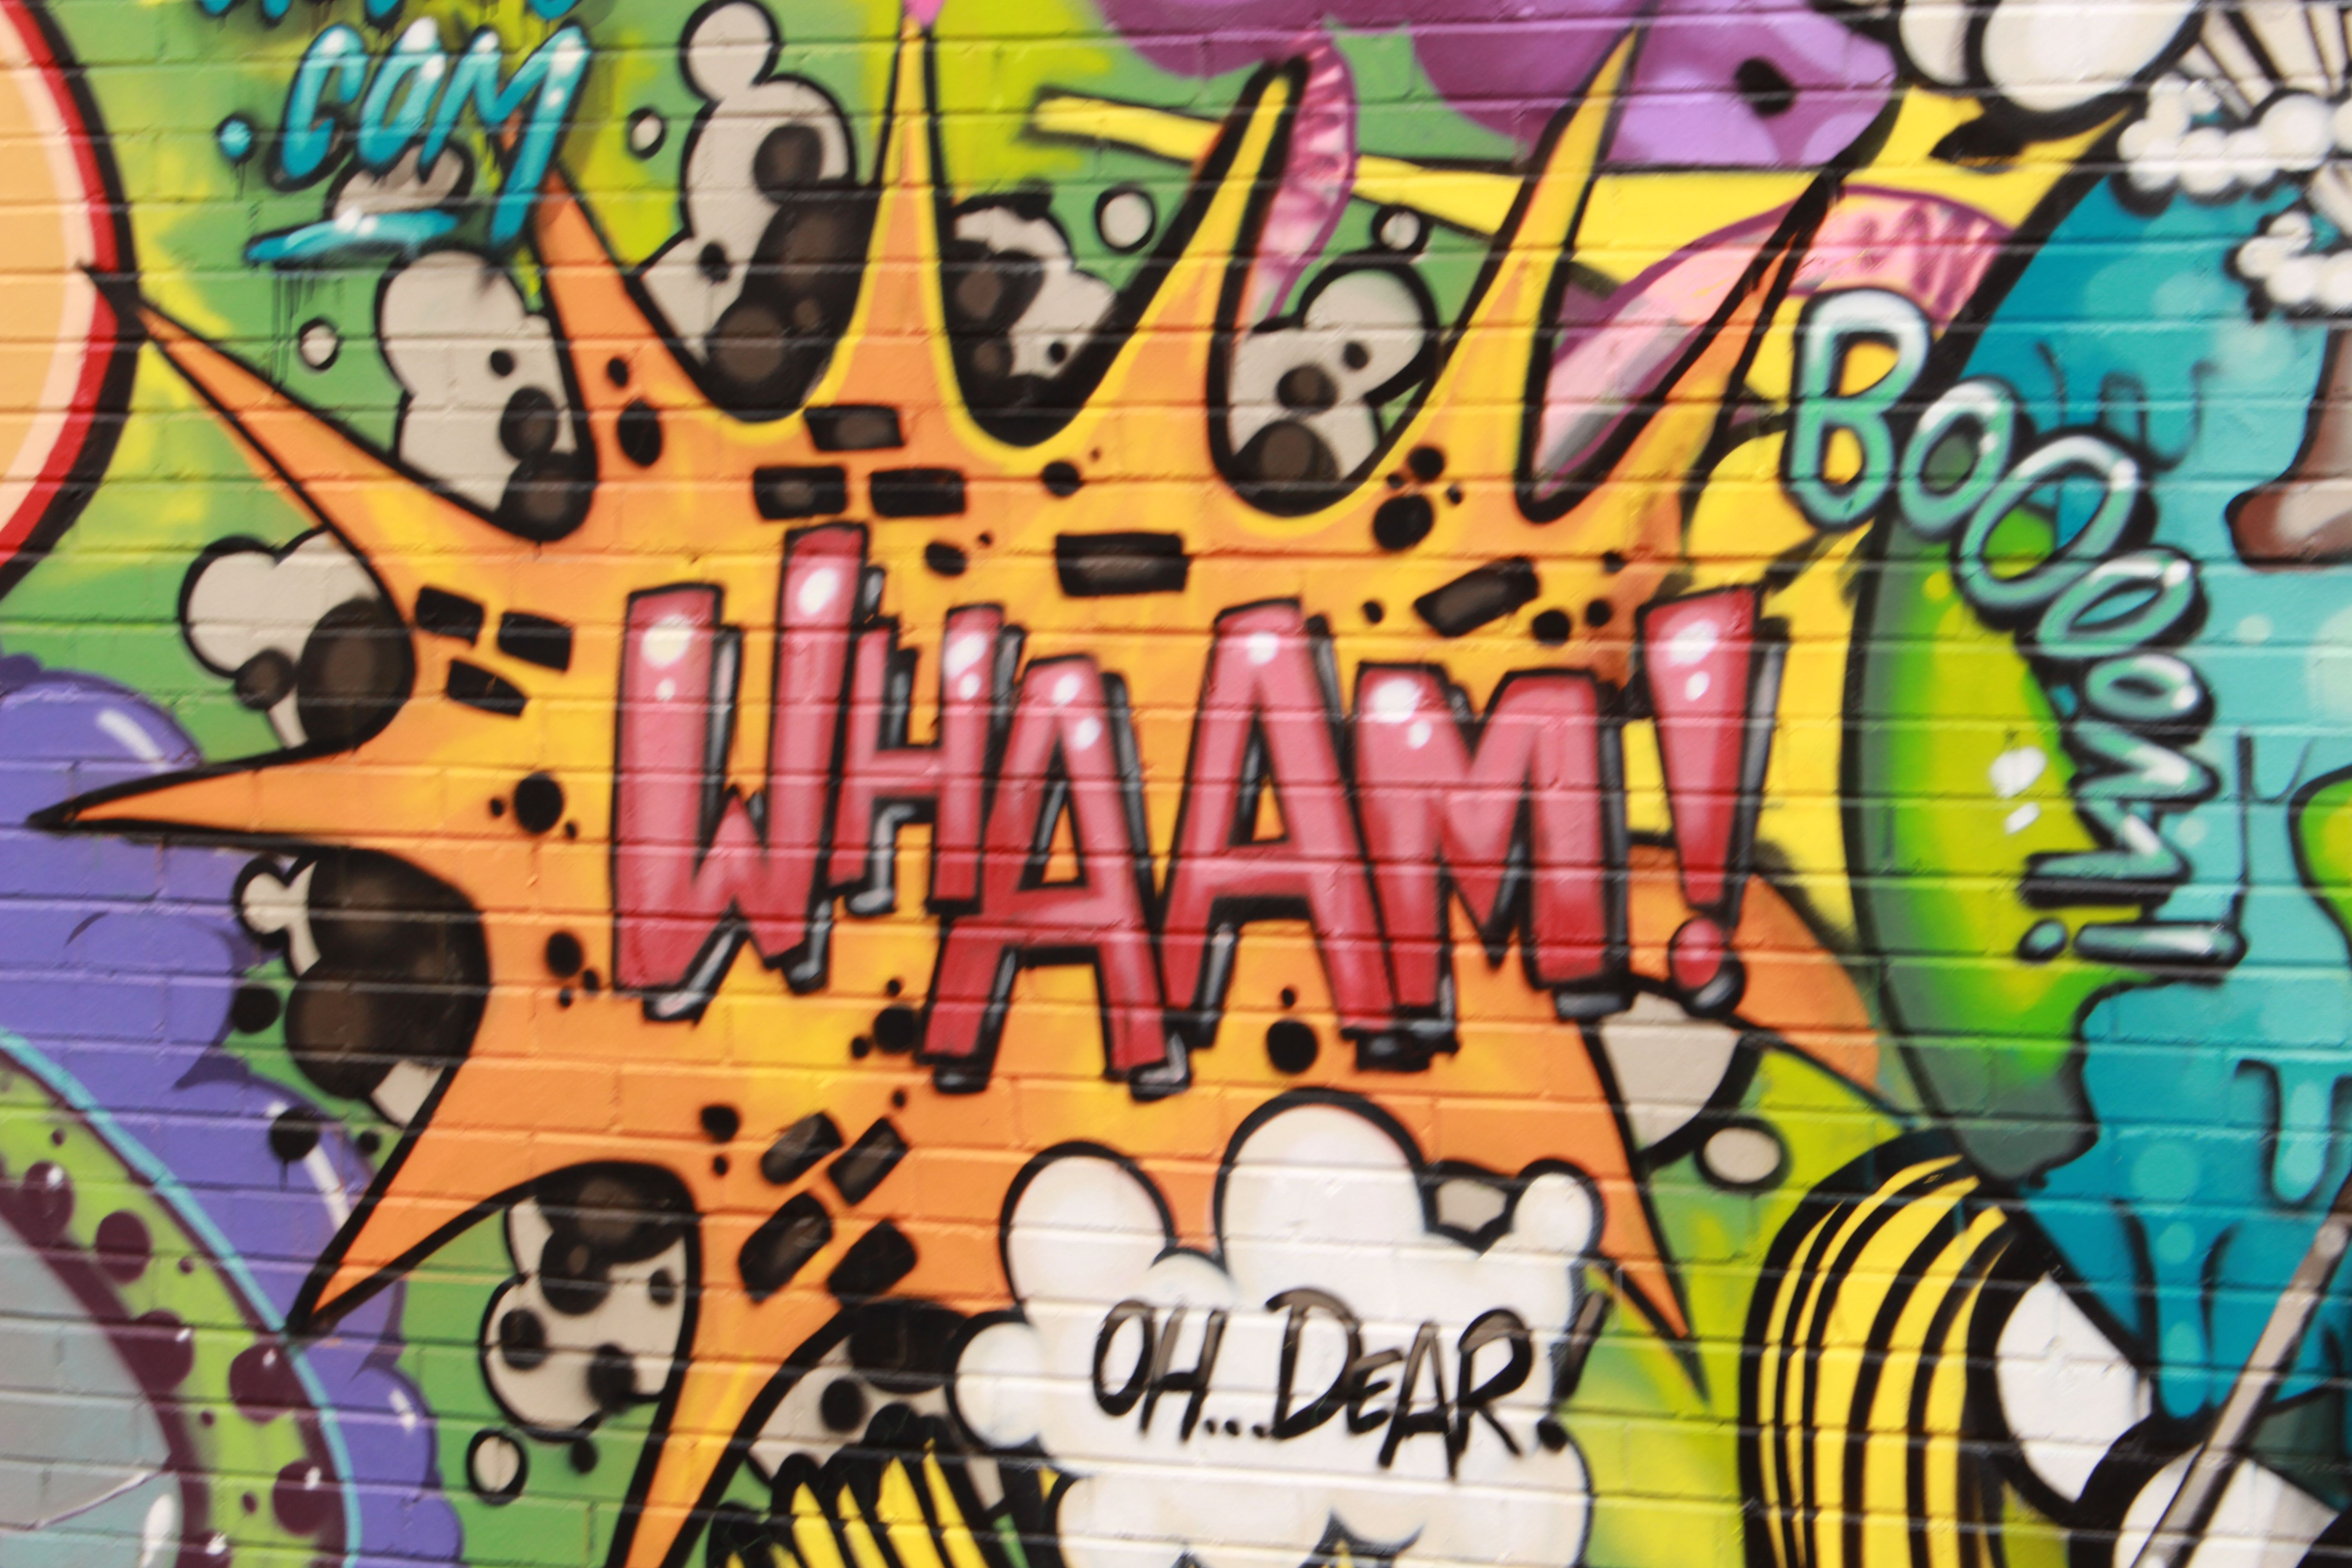 Love The Colour And Texture In The Graffiti